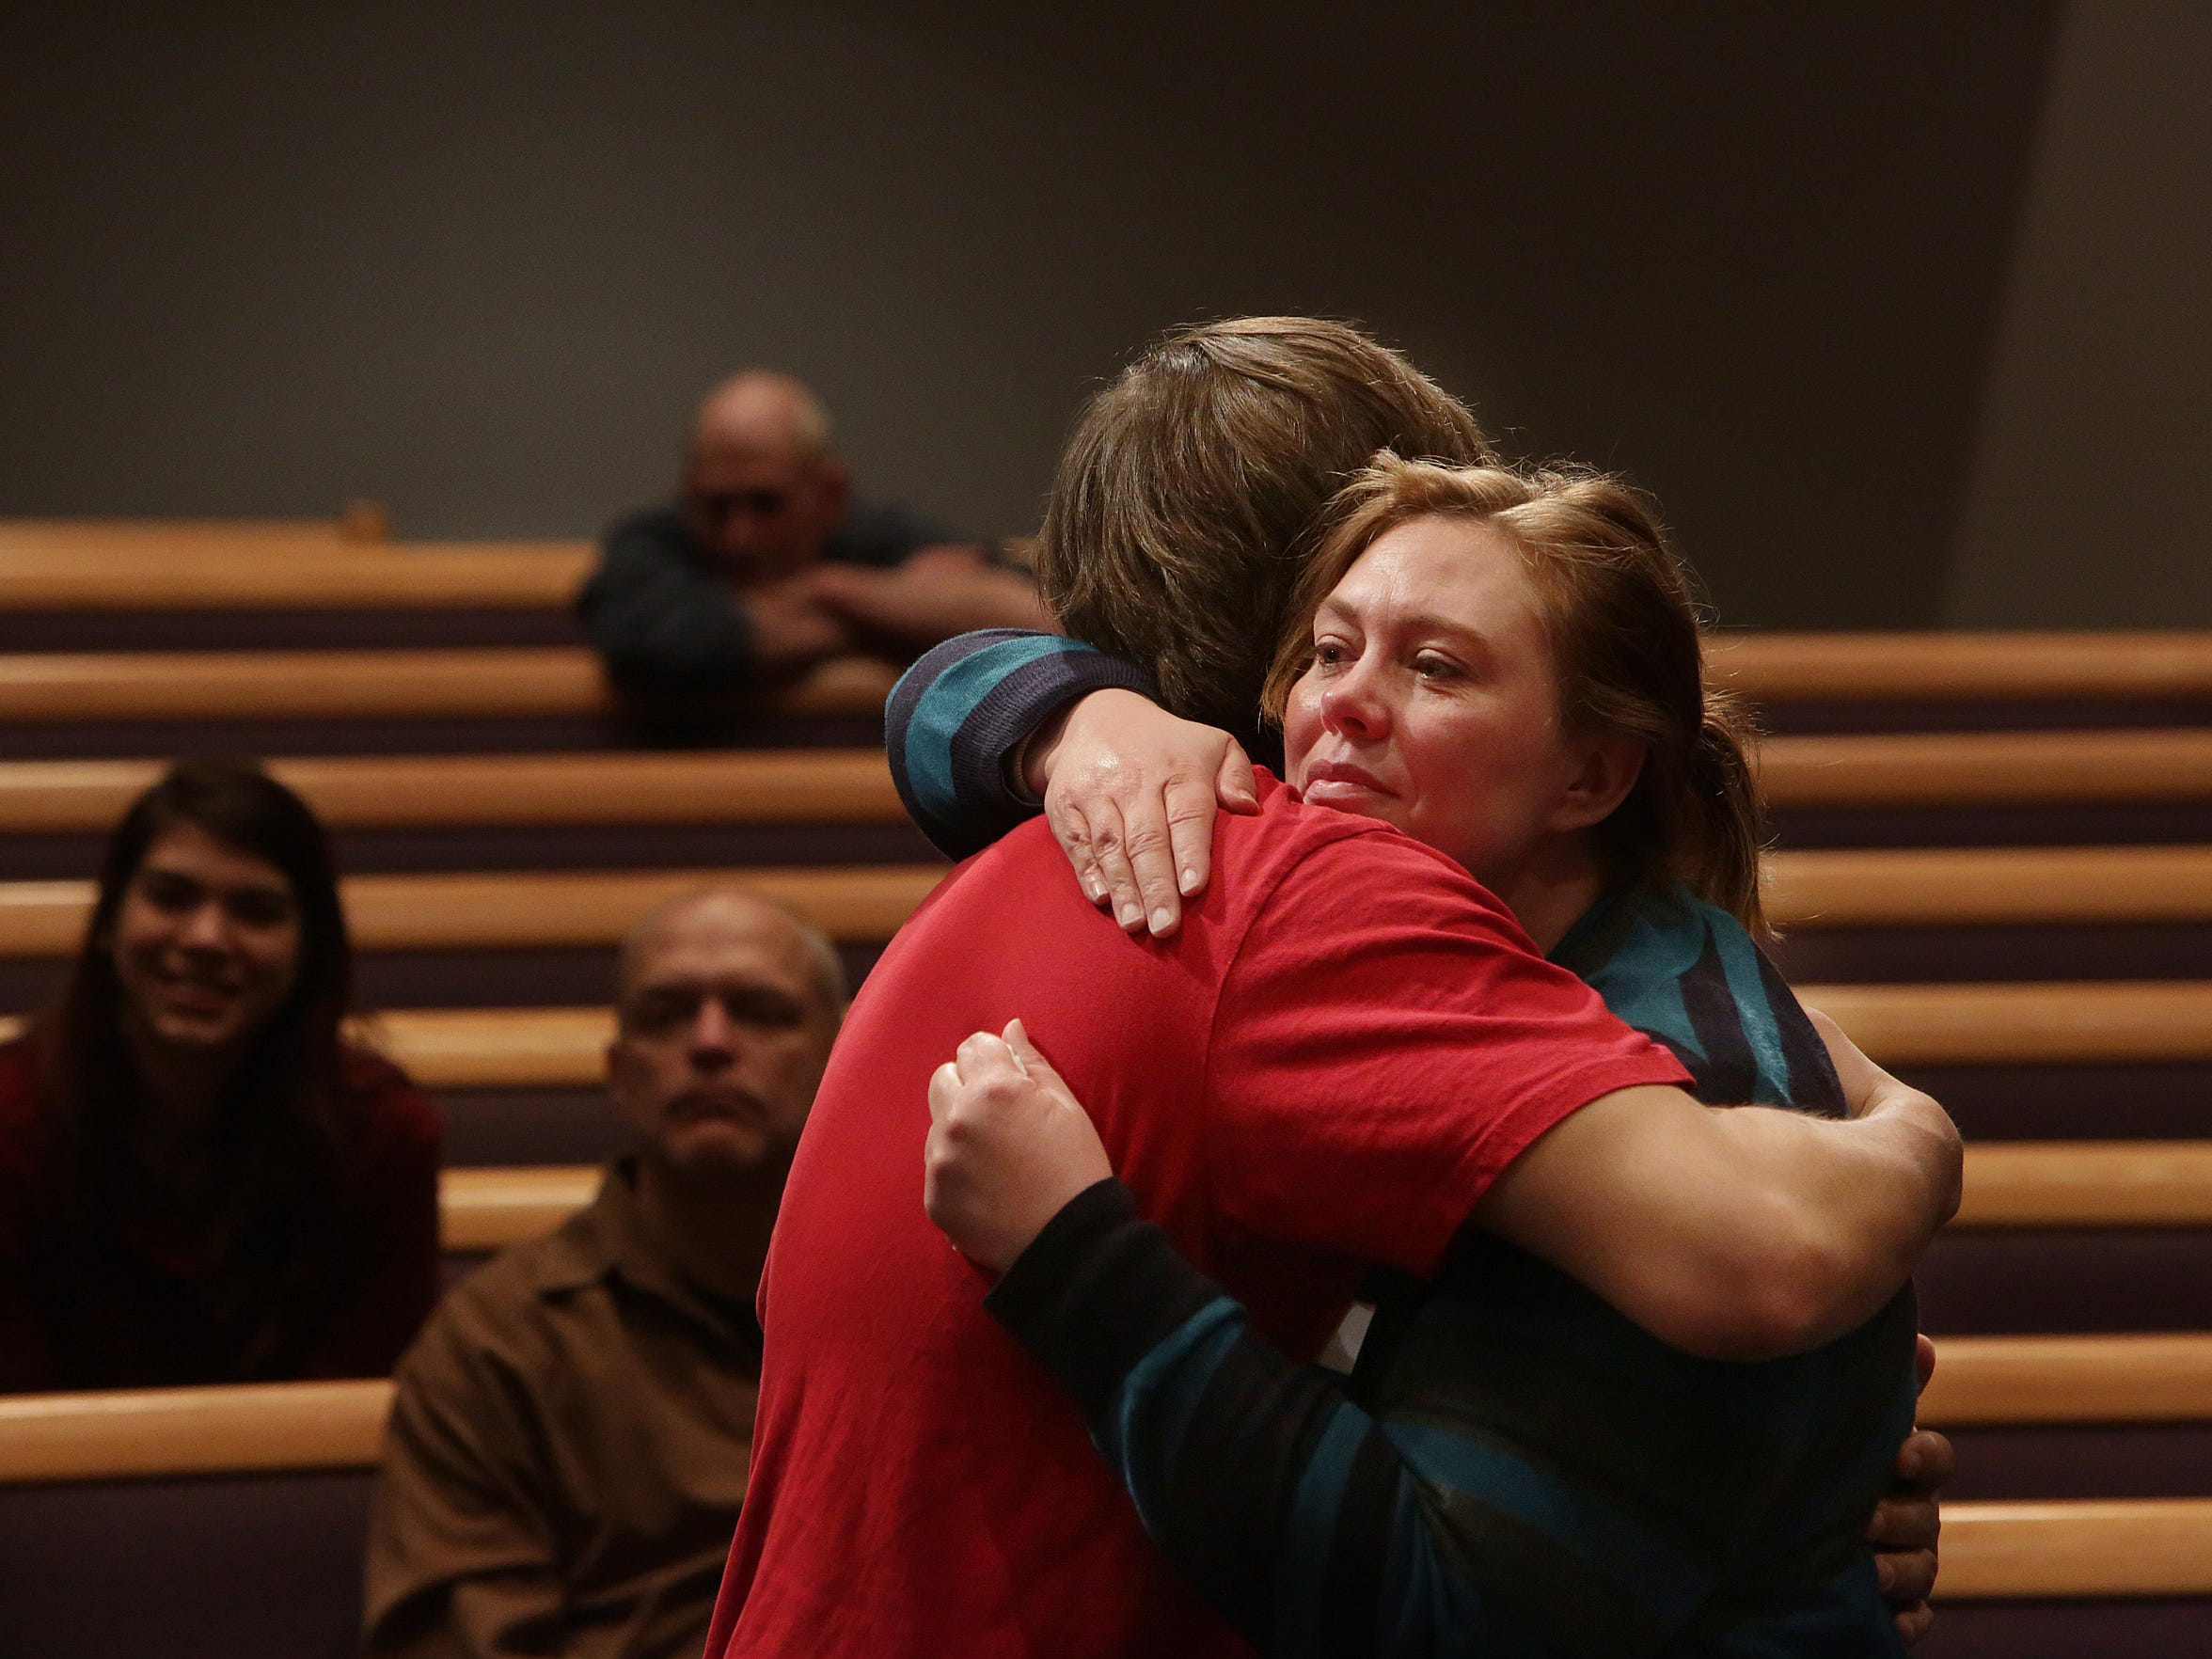 Newly formed CityReach Church is led by Pastor John Alarid and his wife, Hannah. Tina May hugs her son, Bradley Bernal, after they came forward to accept Jesus Christ.